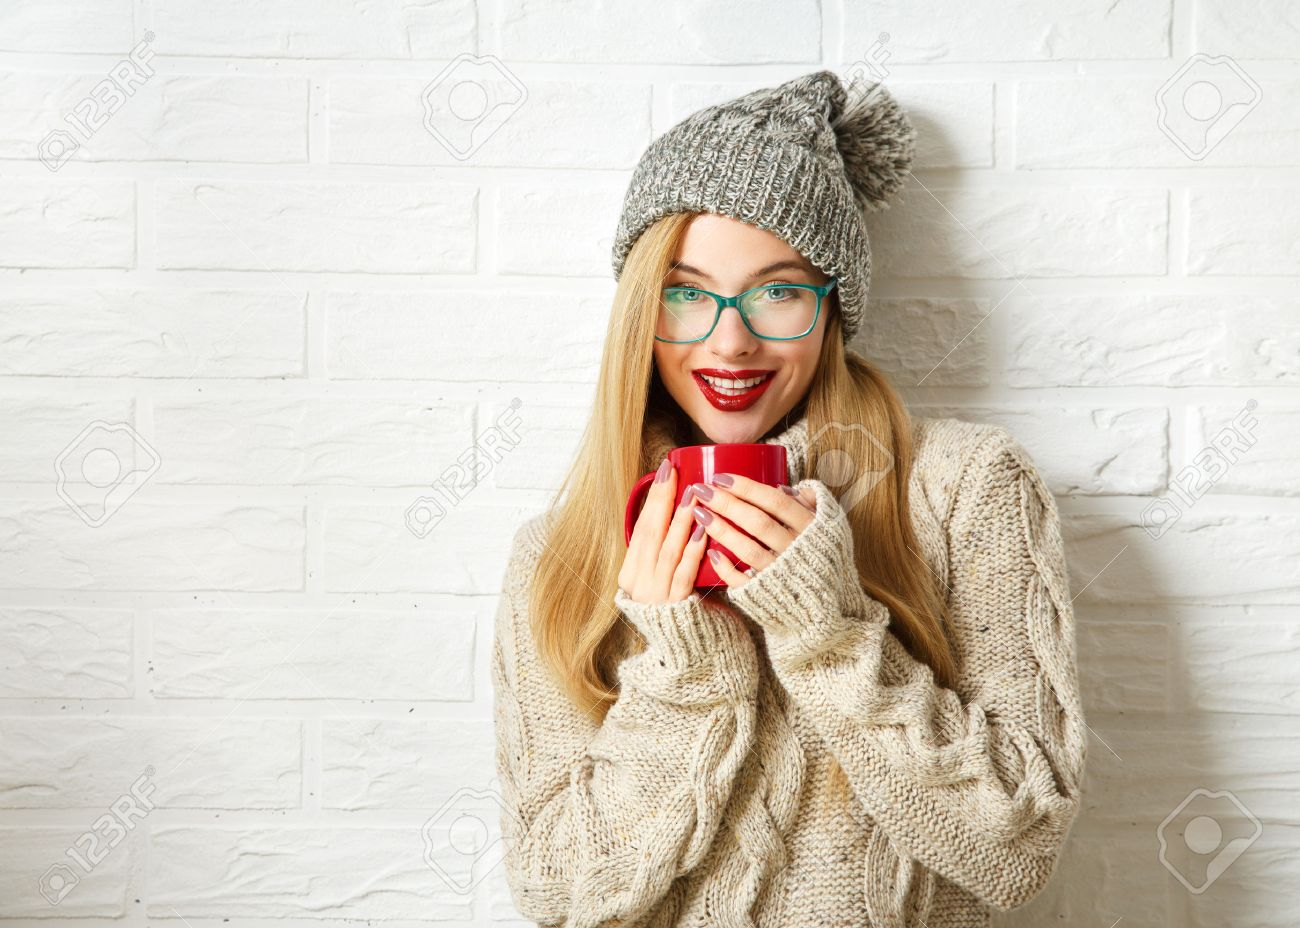 Smiling Hipster Girl in Knitted Sweater and Beanie Hat with Mug in Hands at  White Brick 33d6042e782